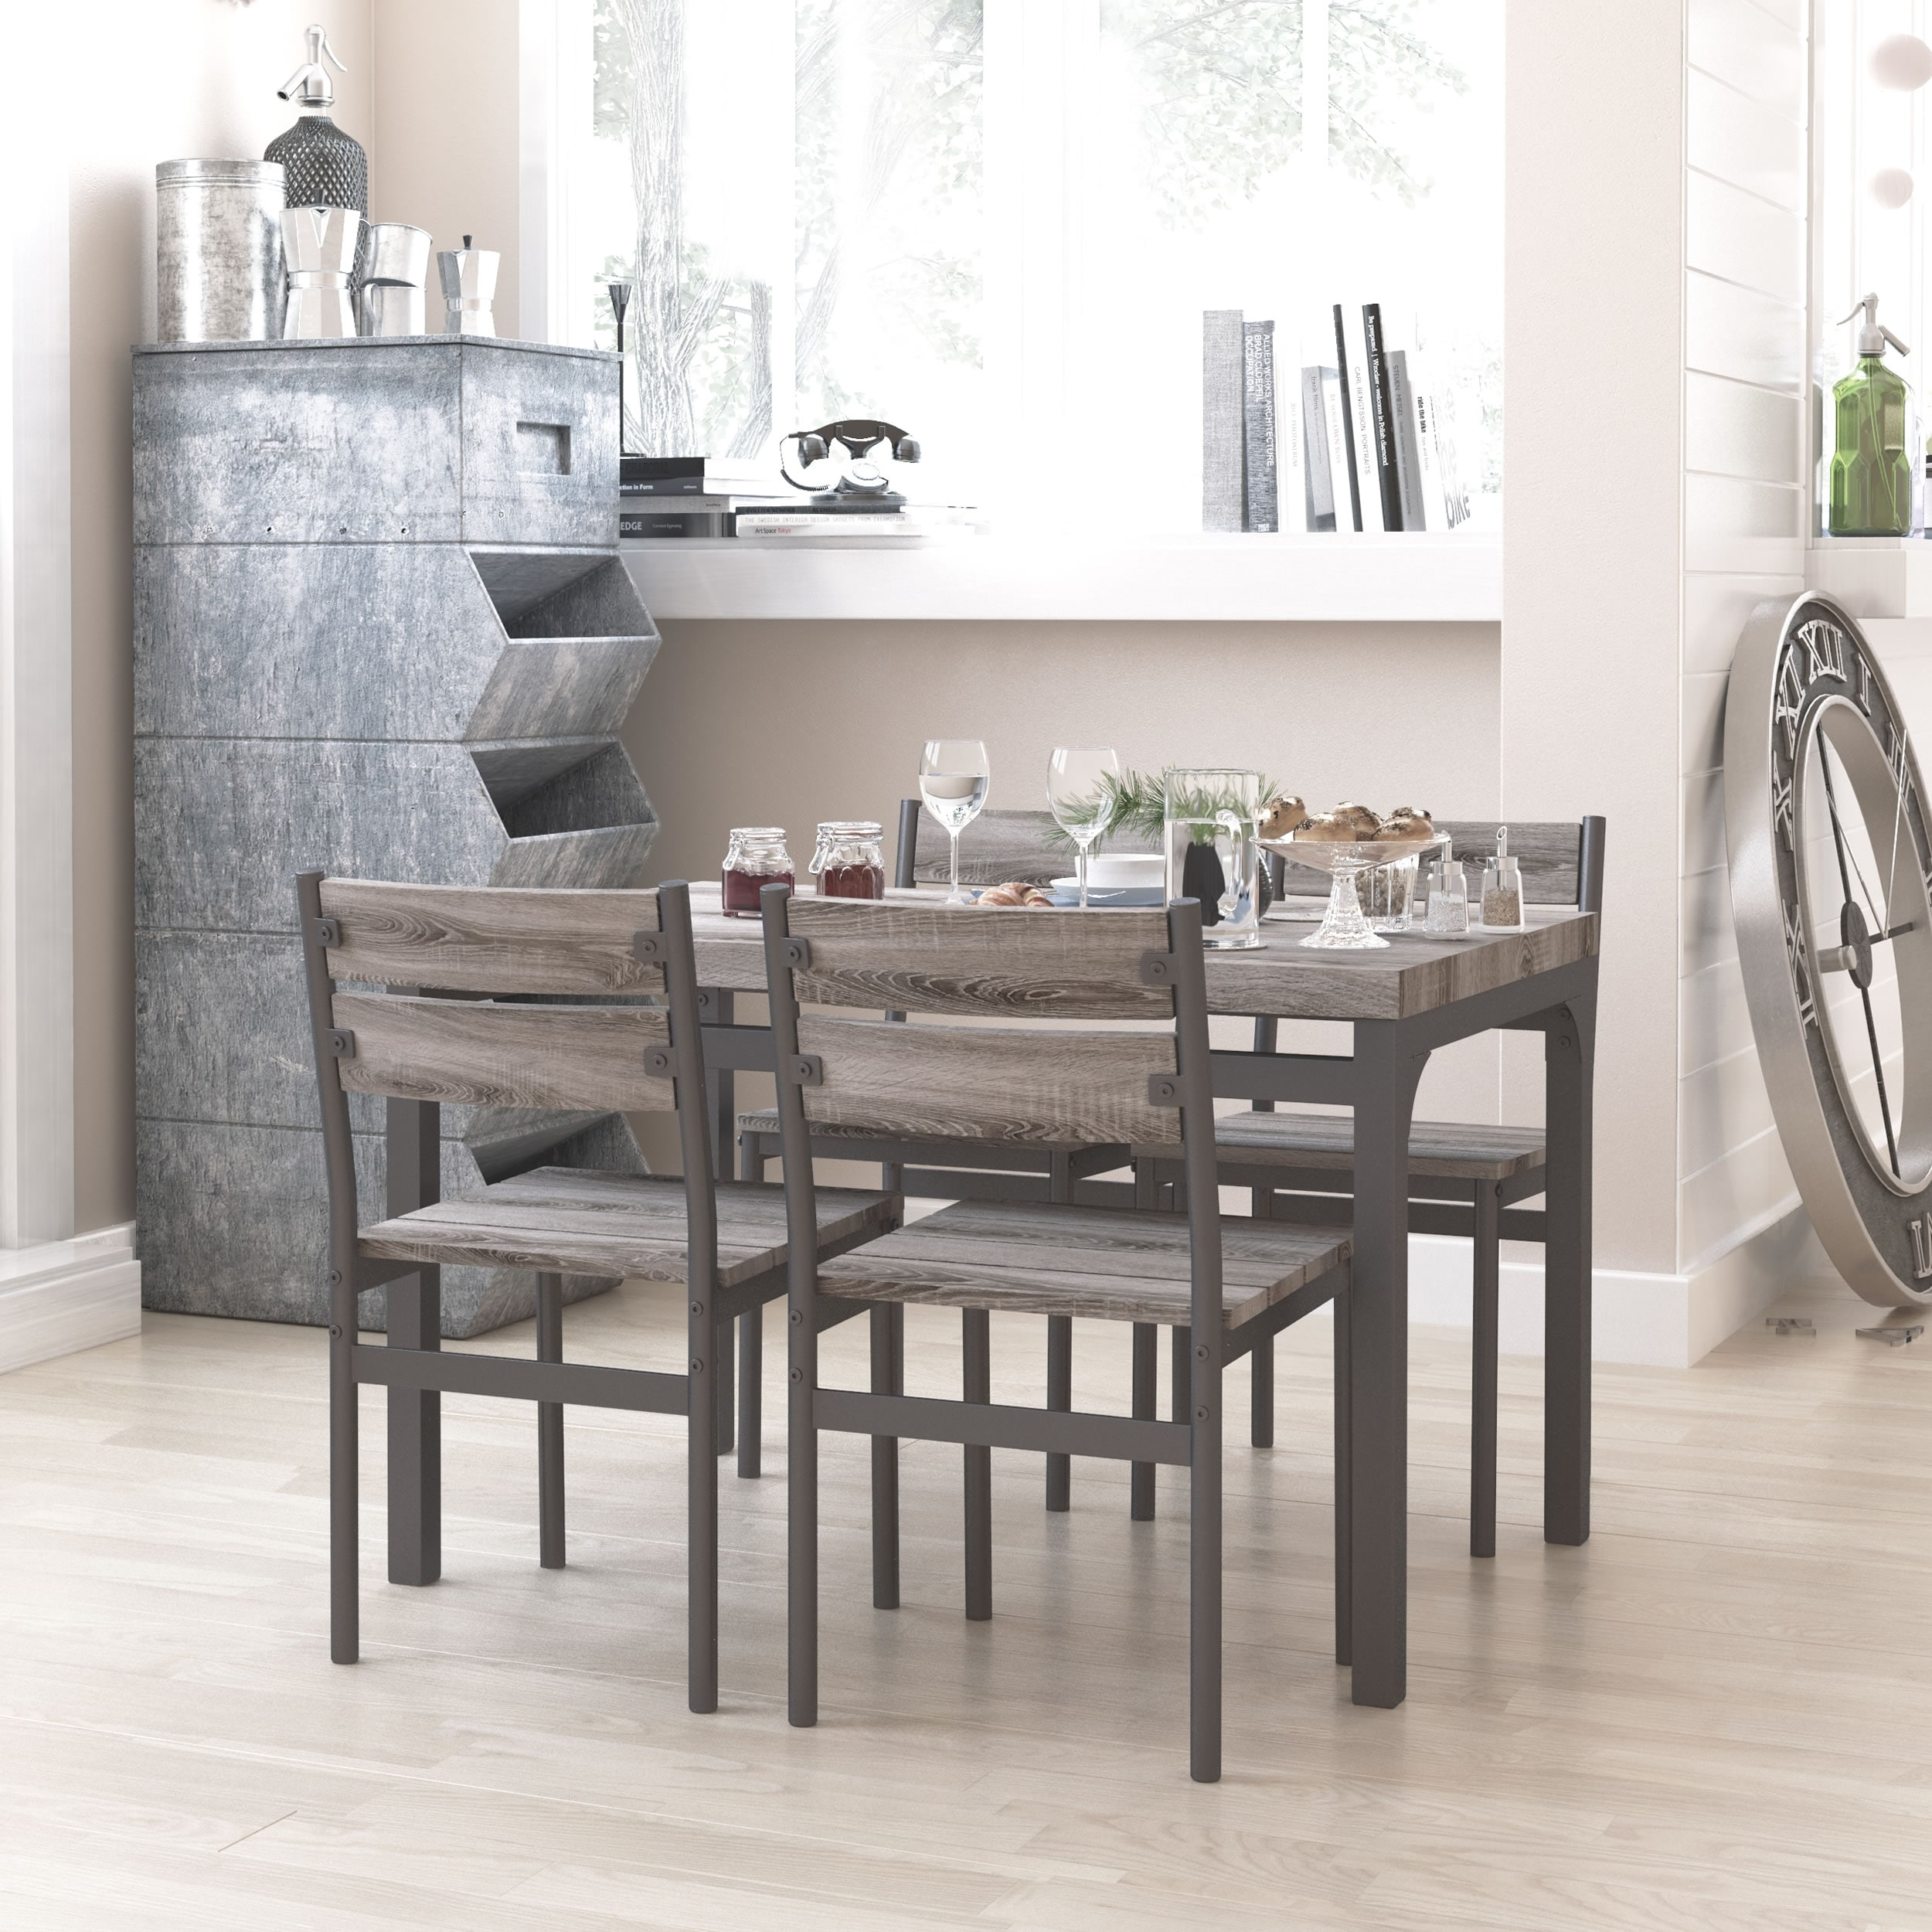 Picture of: Zenvida 5 Piece Dining Set Rustic Grey Wooden Kitchen Table And 4 Chairs On Sale Overstock 21803691